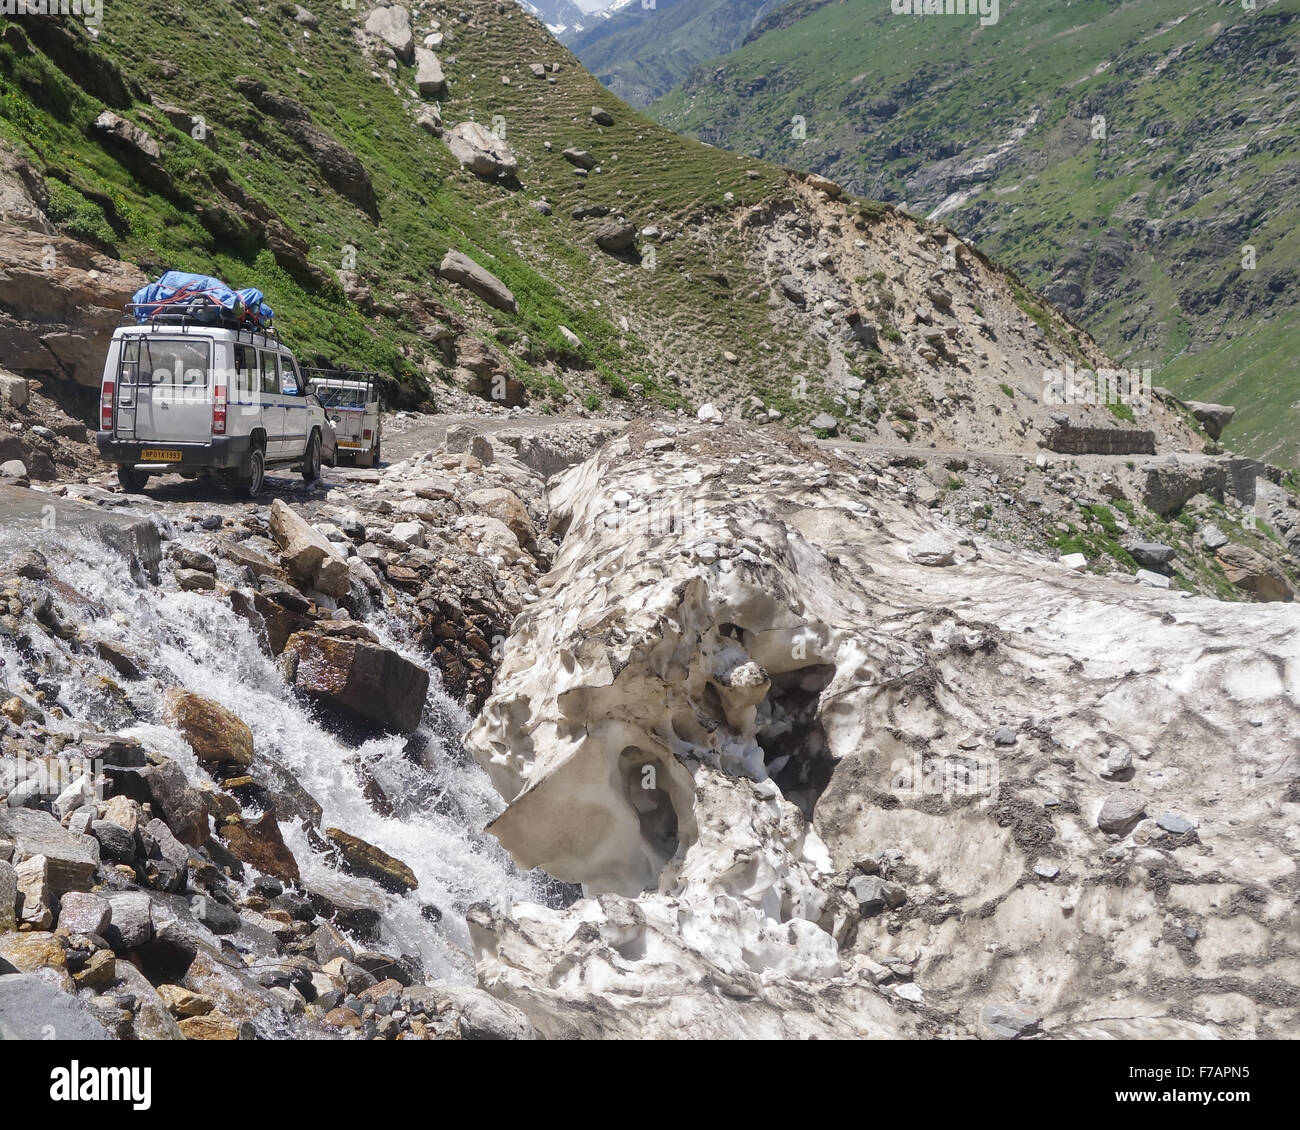 Spiti Valley, Himachal Pradesh - In summer laden Jeeps drive by thawing ice along a road which is impassable in - Stock Image